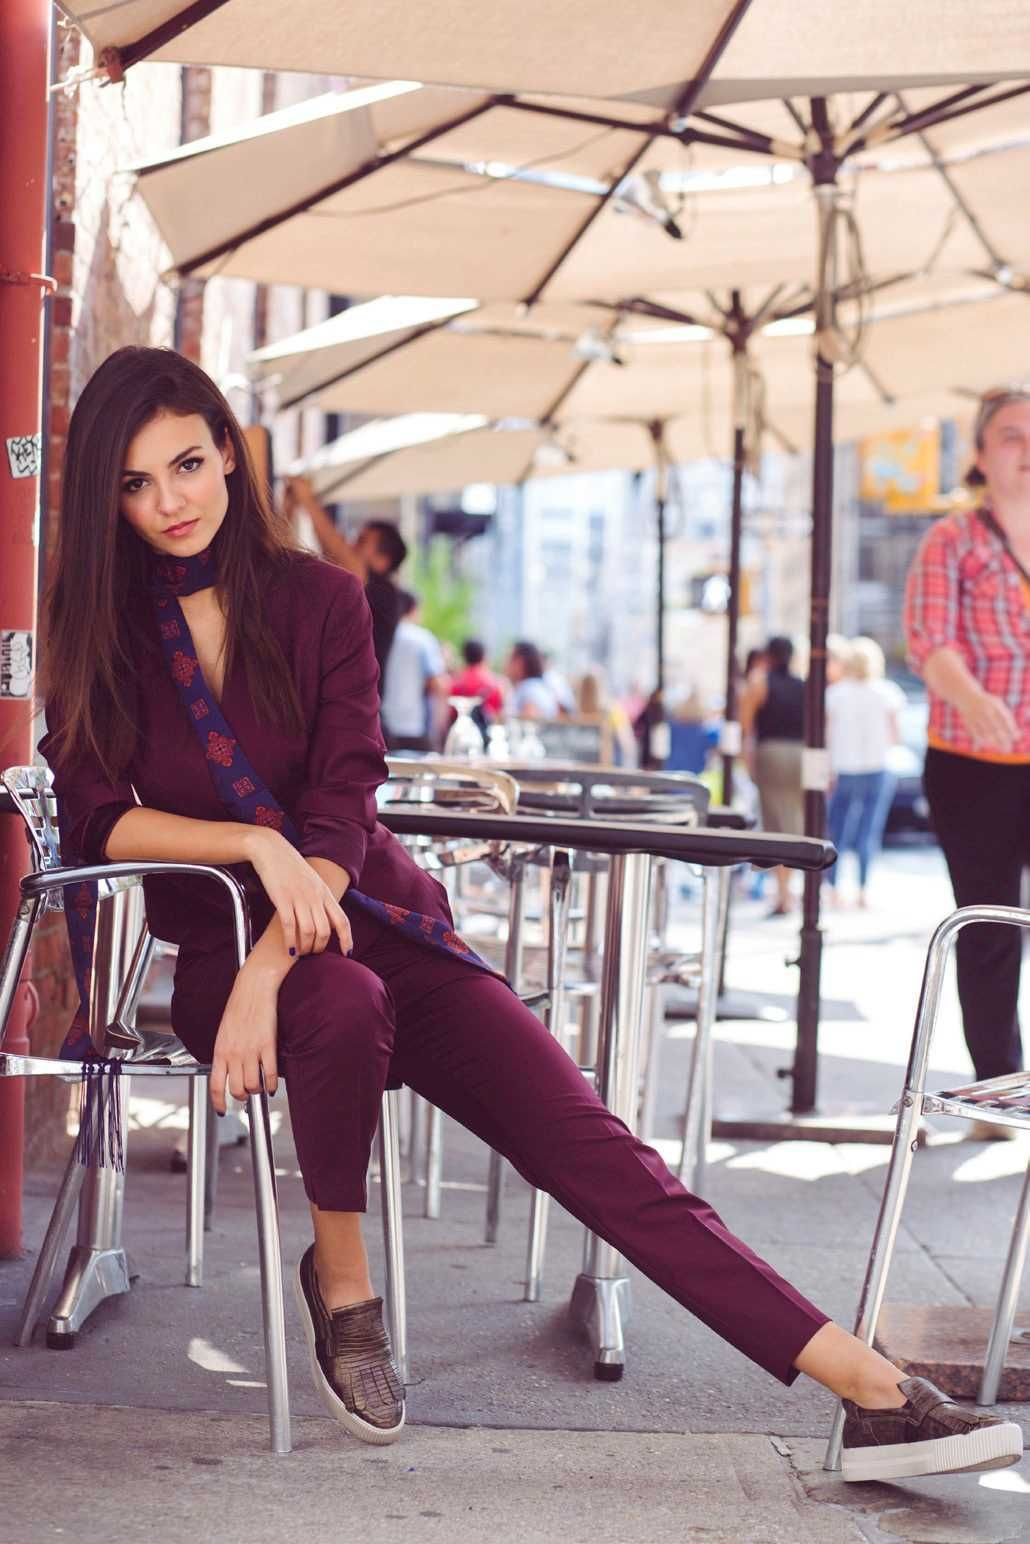 Victoria Justice For NKD Photoshoot 2016